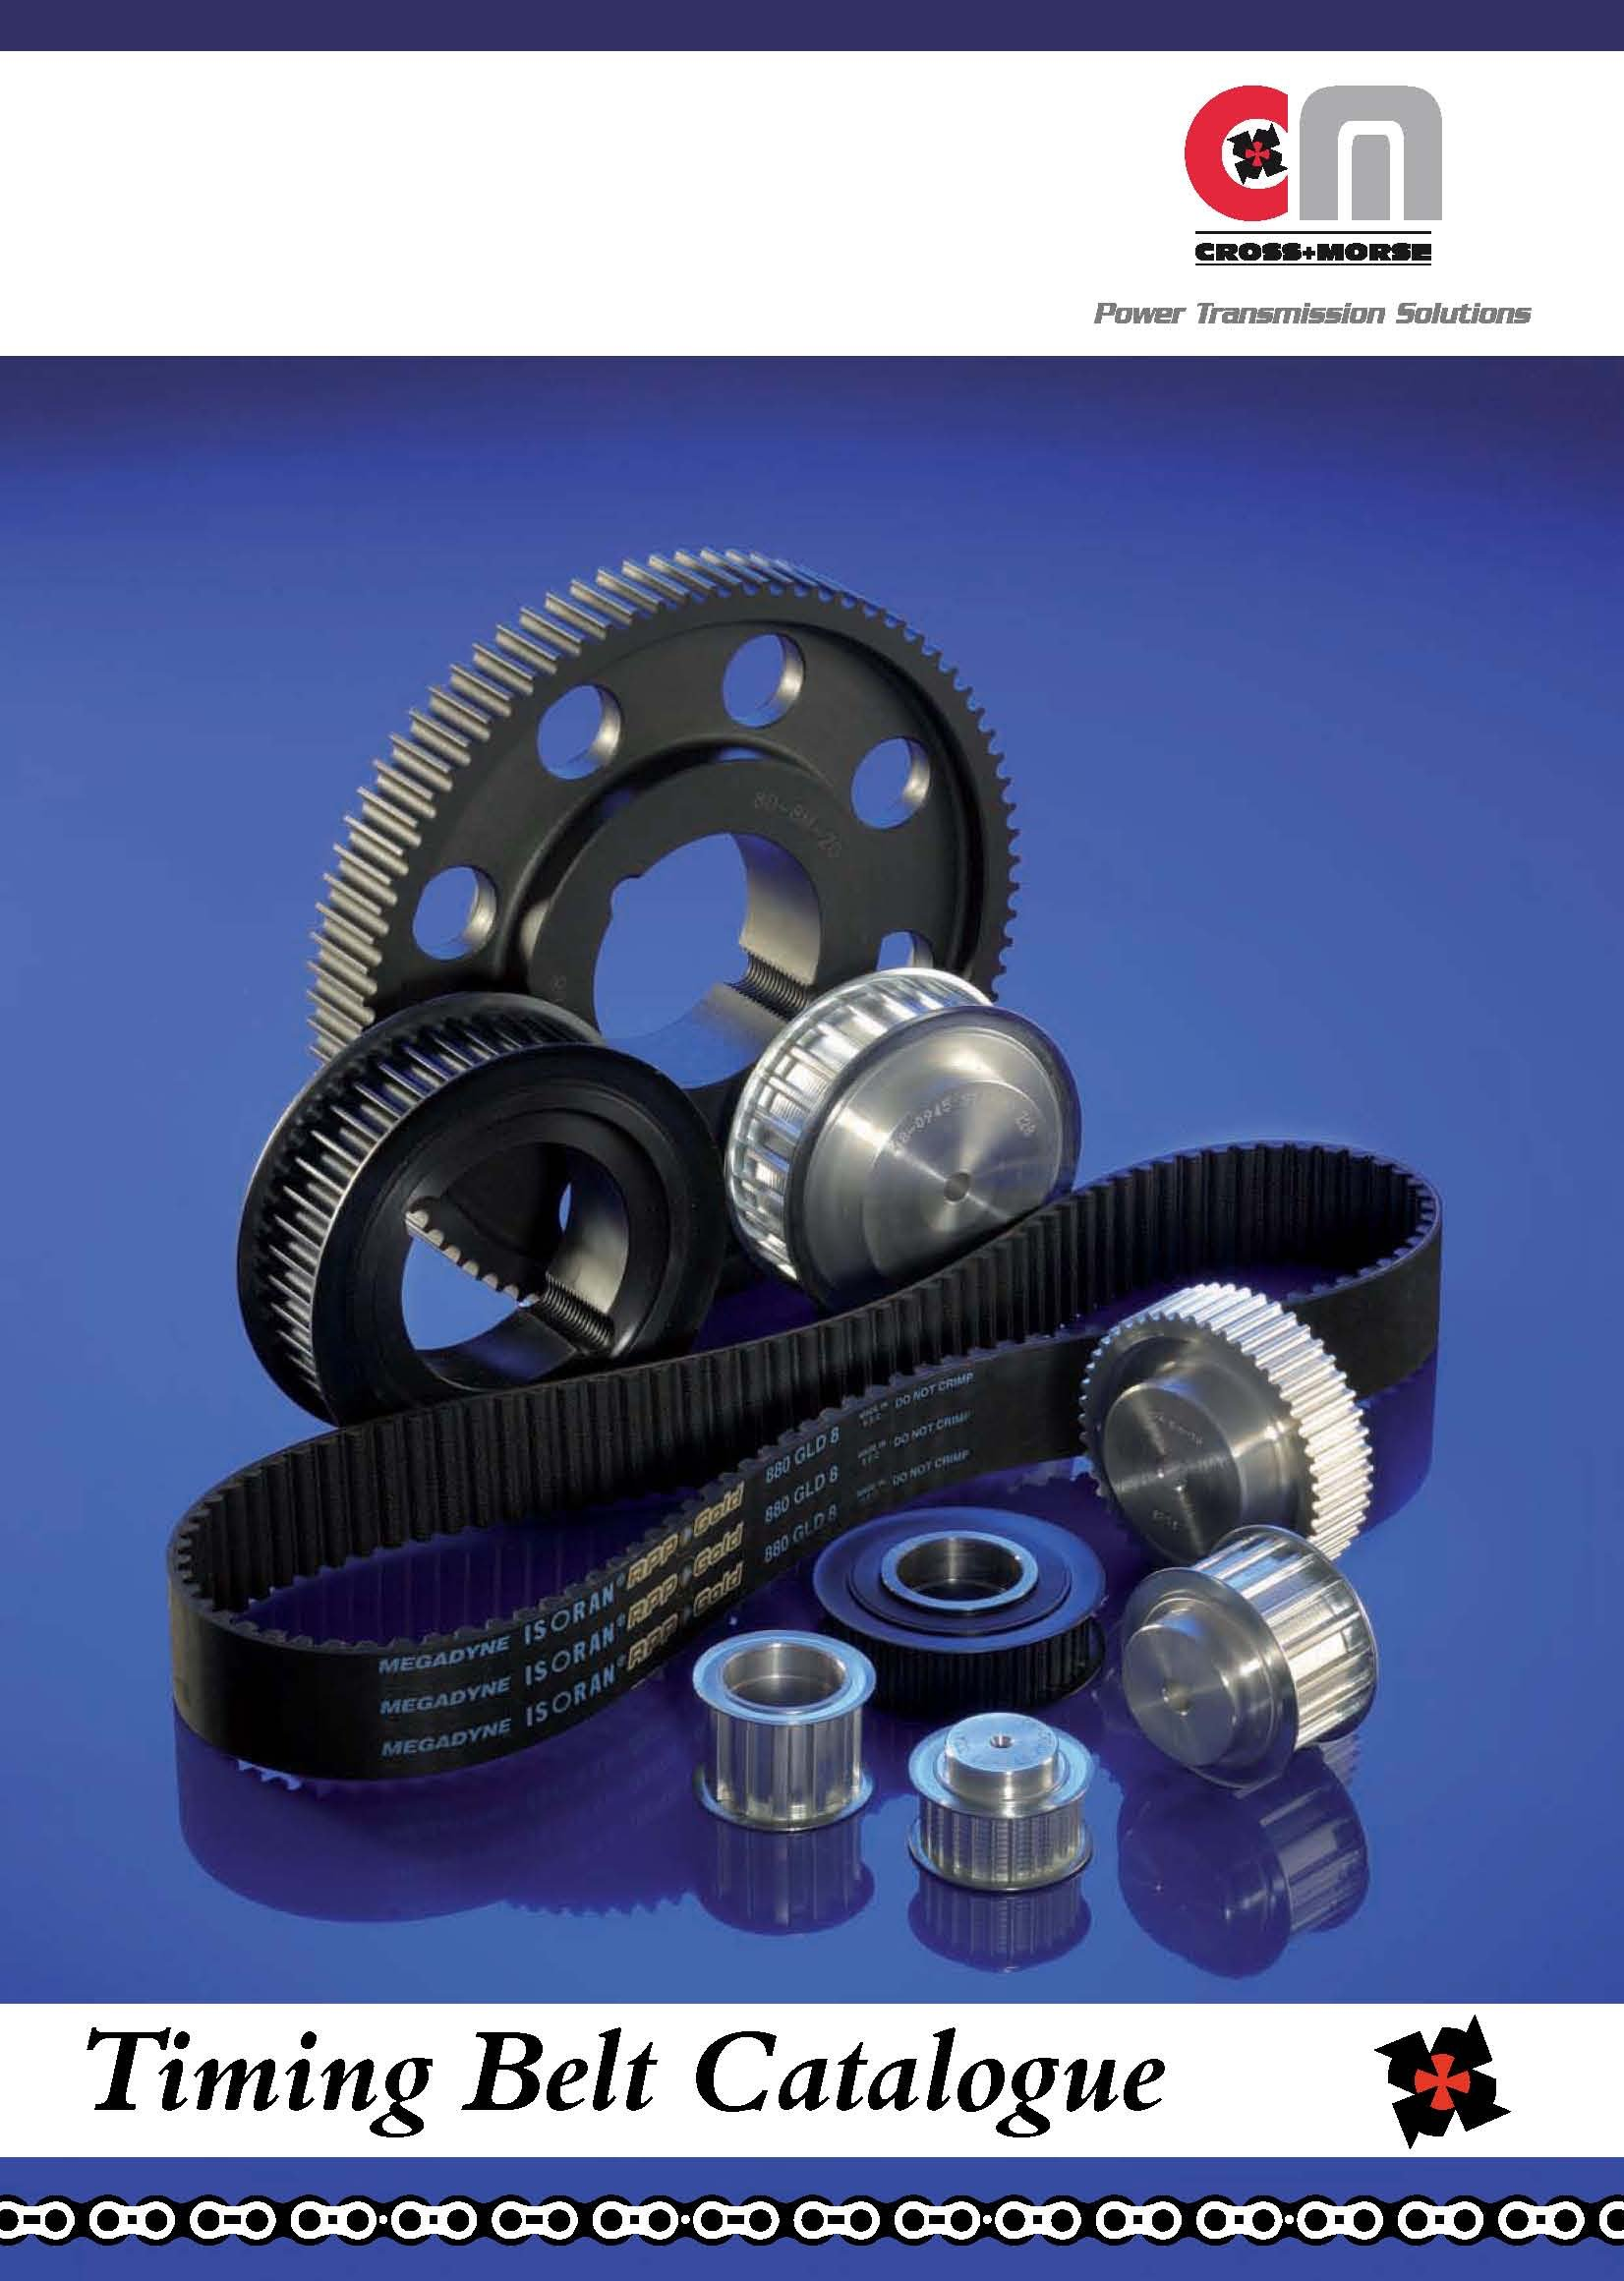 New Timing Belt & Pulley Catalogue from Cross+Morse